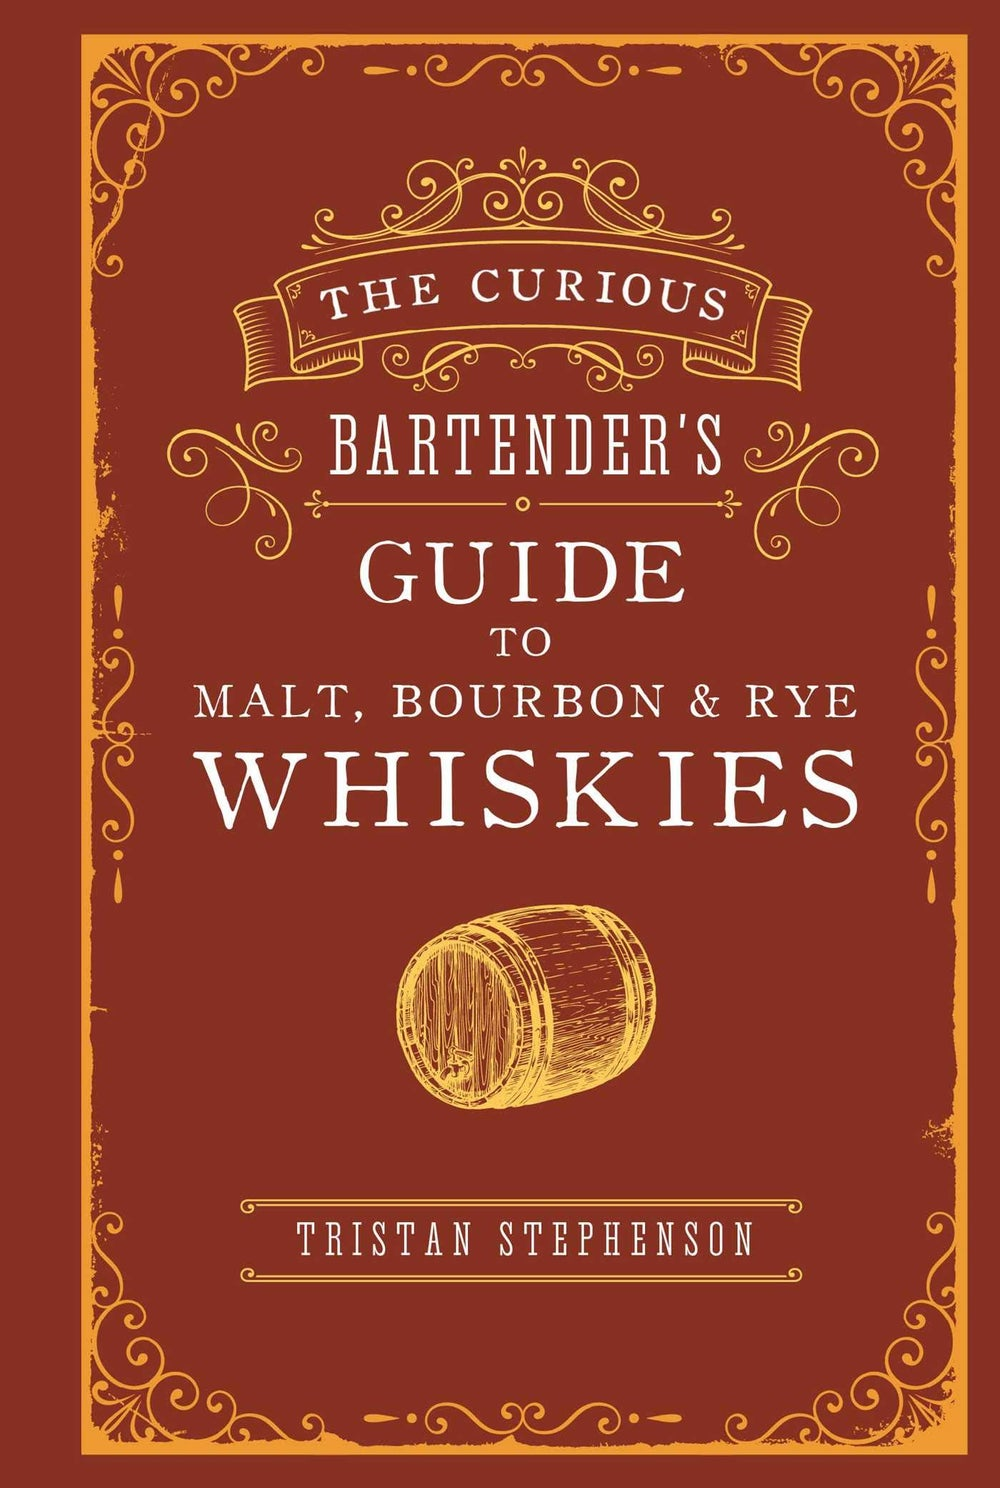 Image of  The Curious Bartender's Guide to Malt, Bourbon & Rye Whiskies